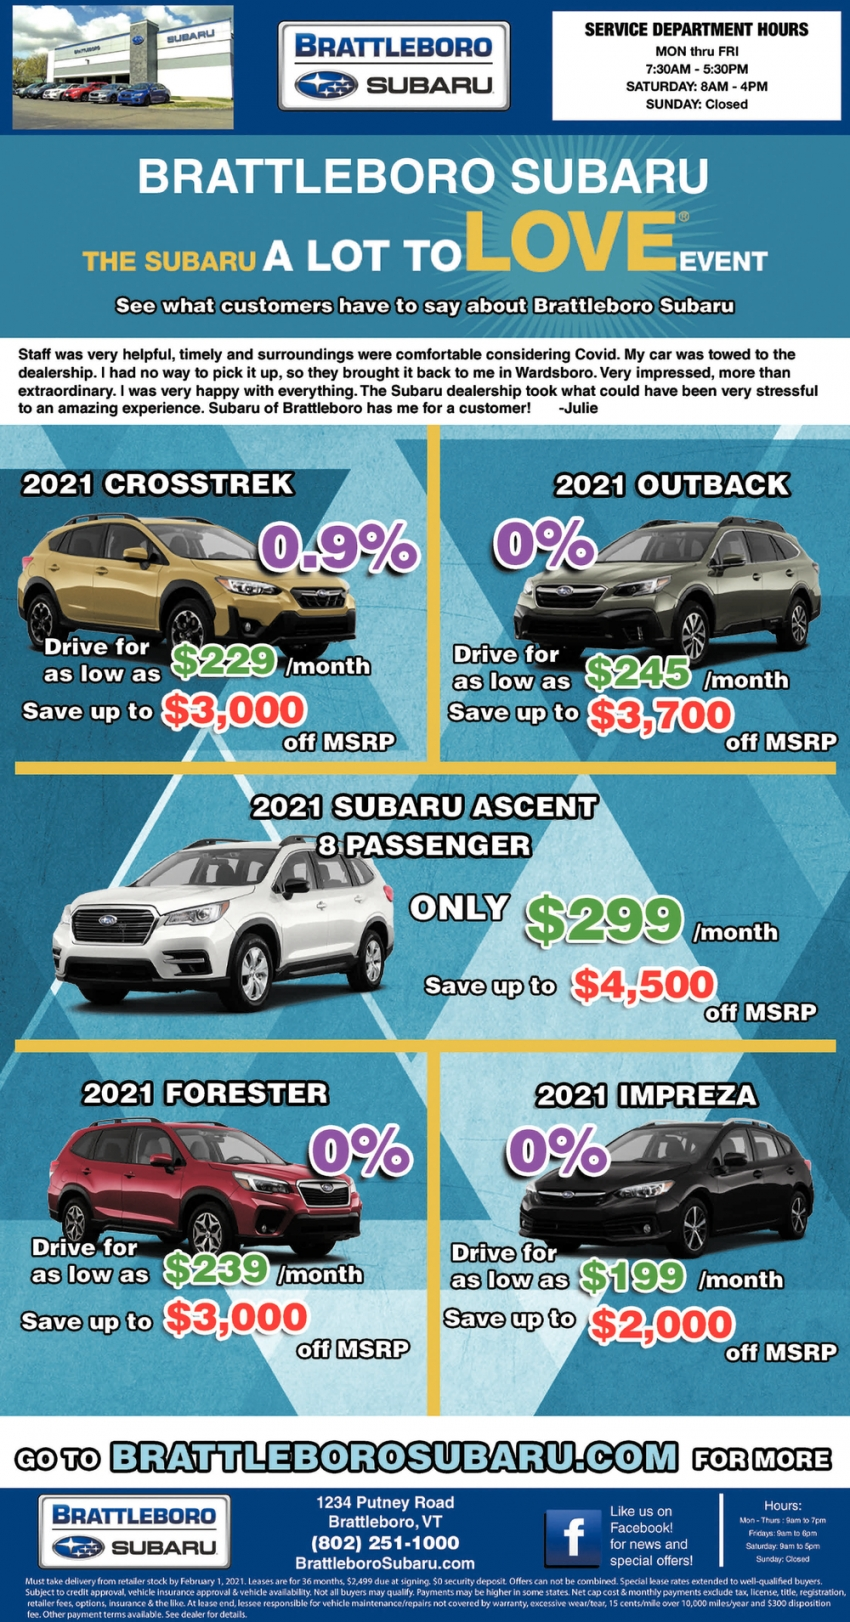 The Subaru A Lot To Love Event